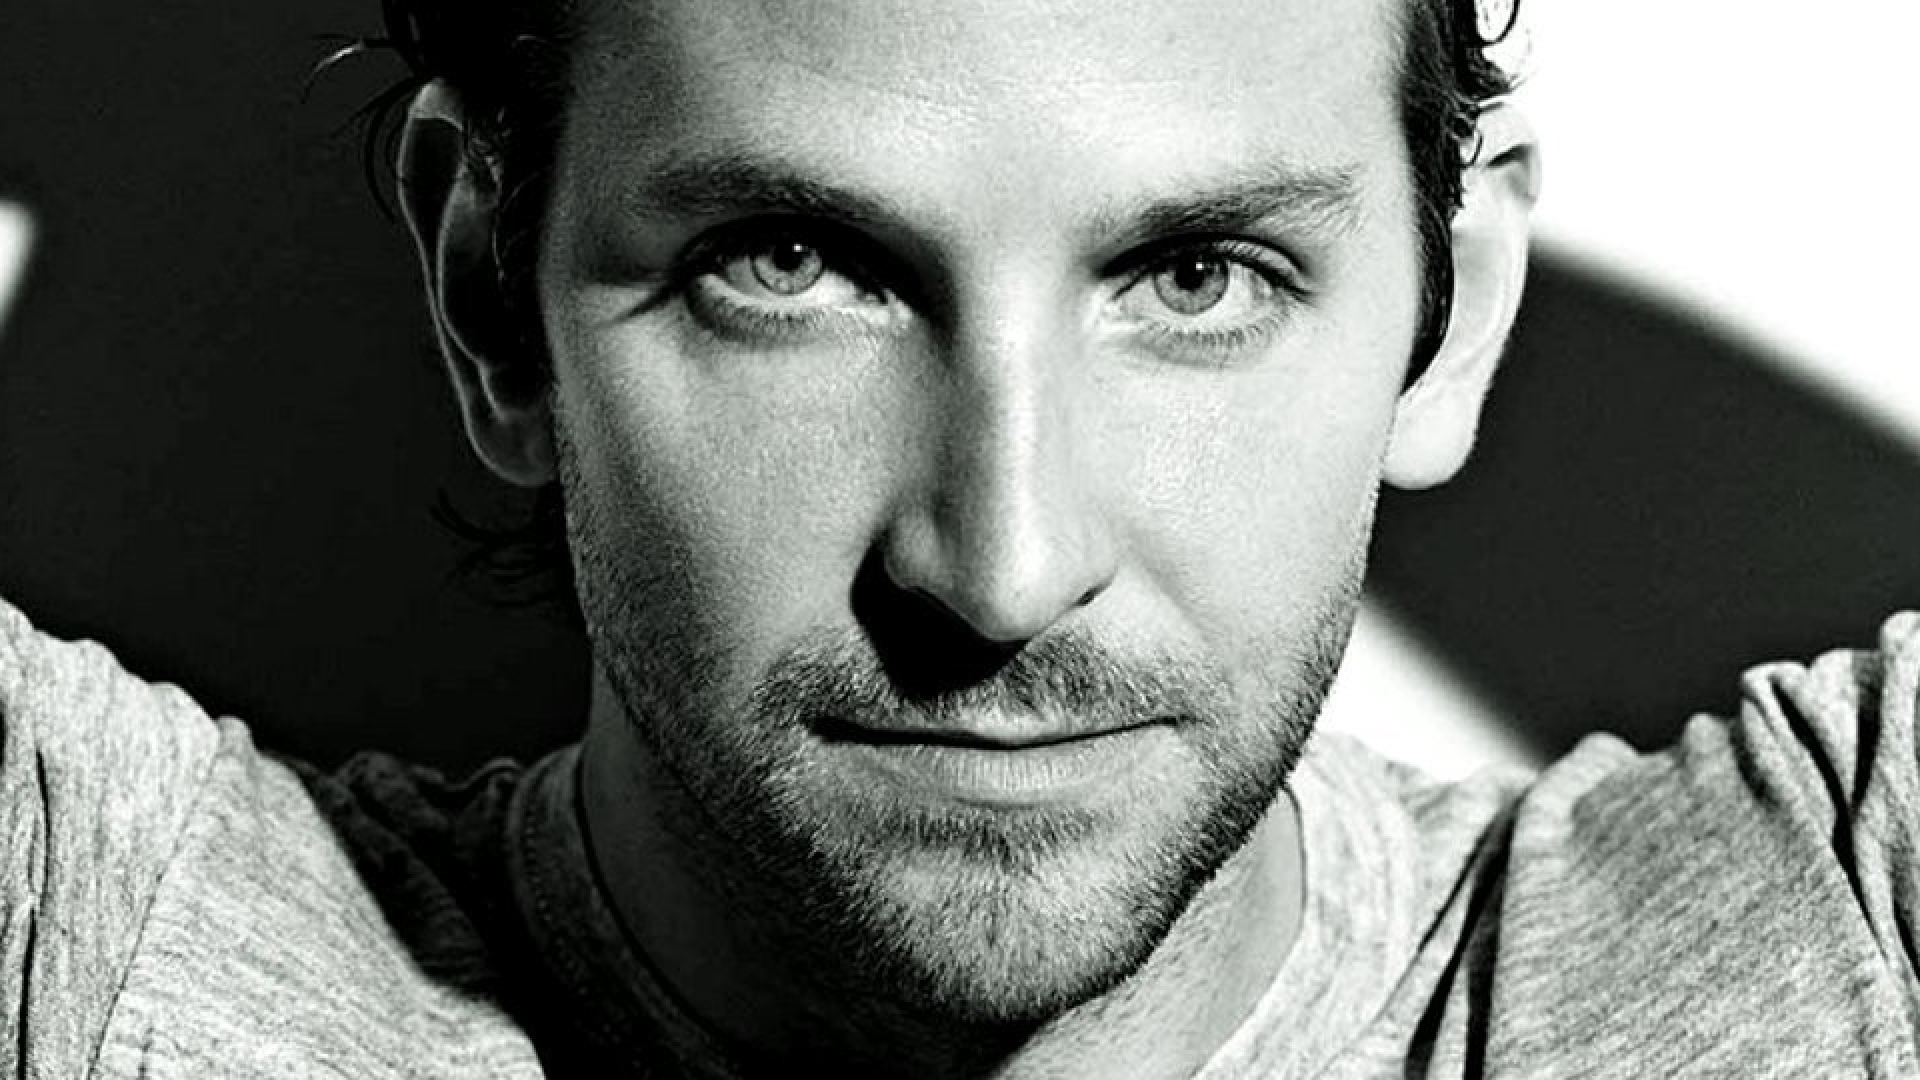 Bradley Cooper Ethnicity, Race, and Nationality